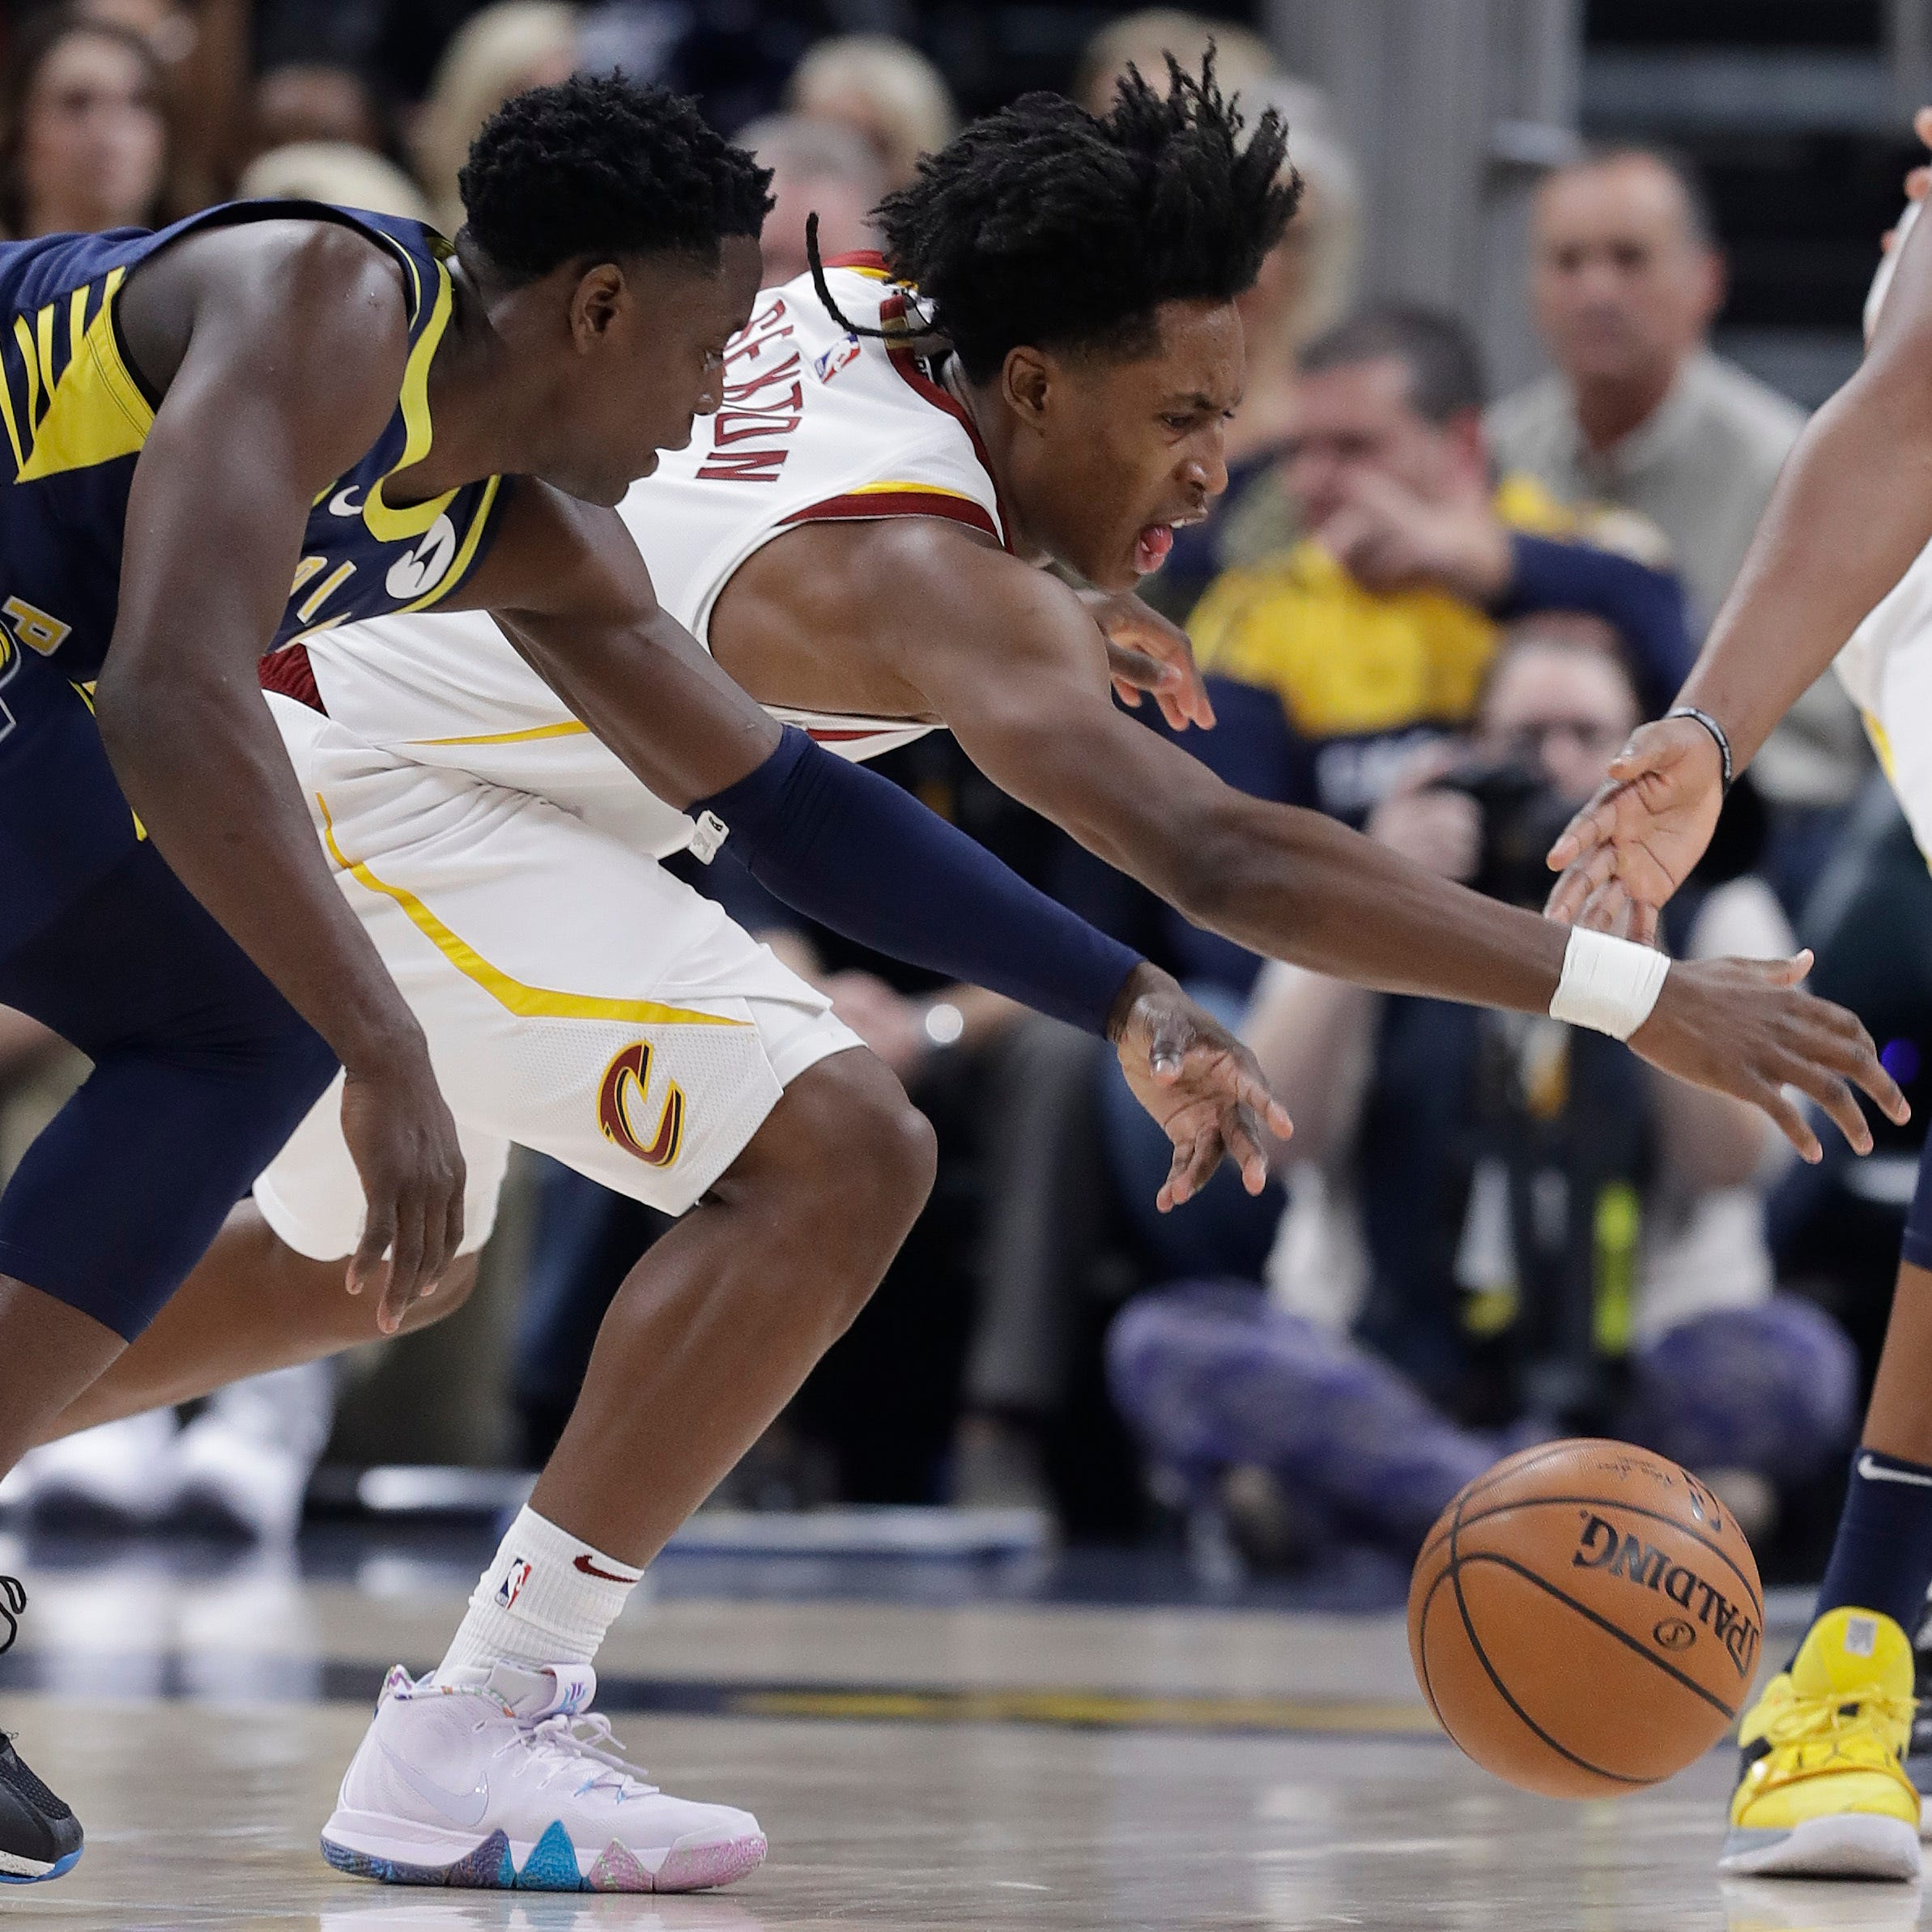 'Basketball gods' strike down Pacers against Cavs